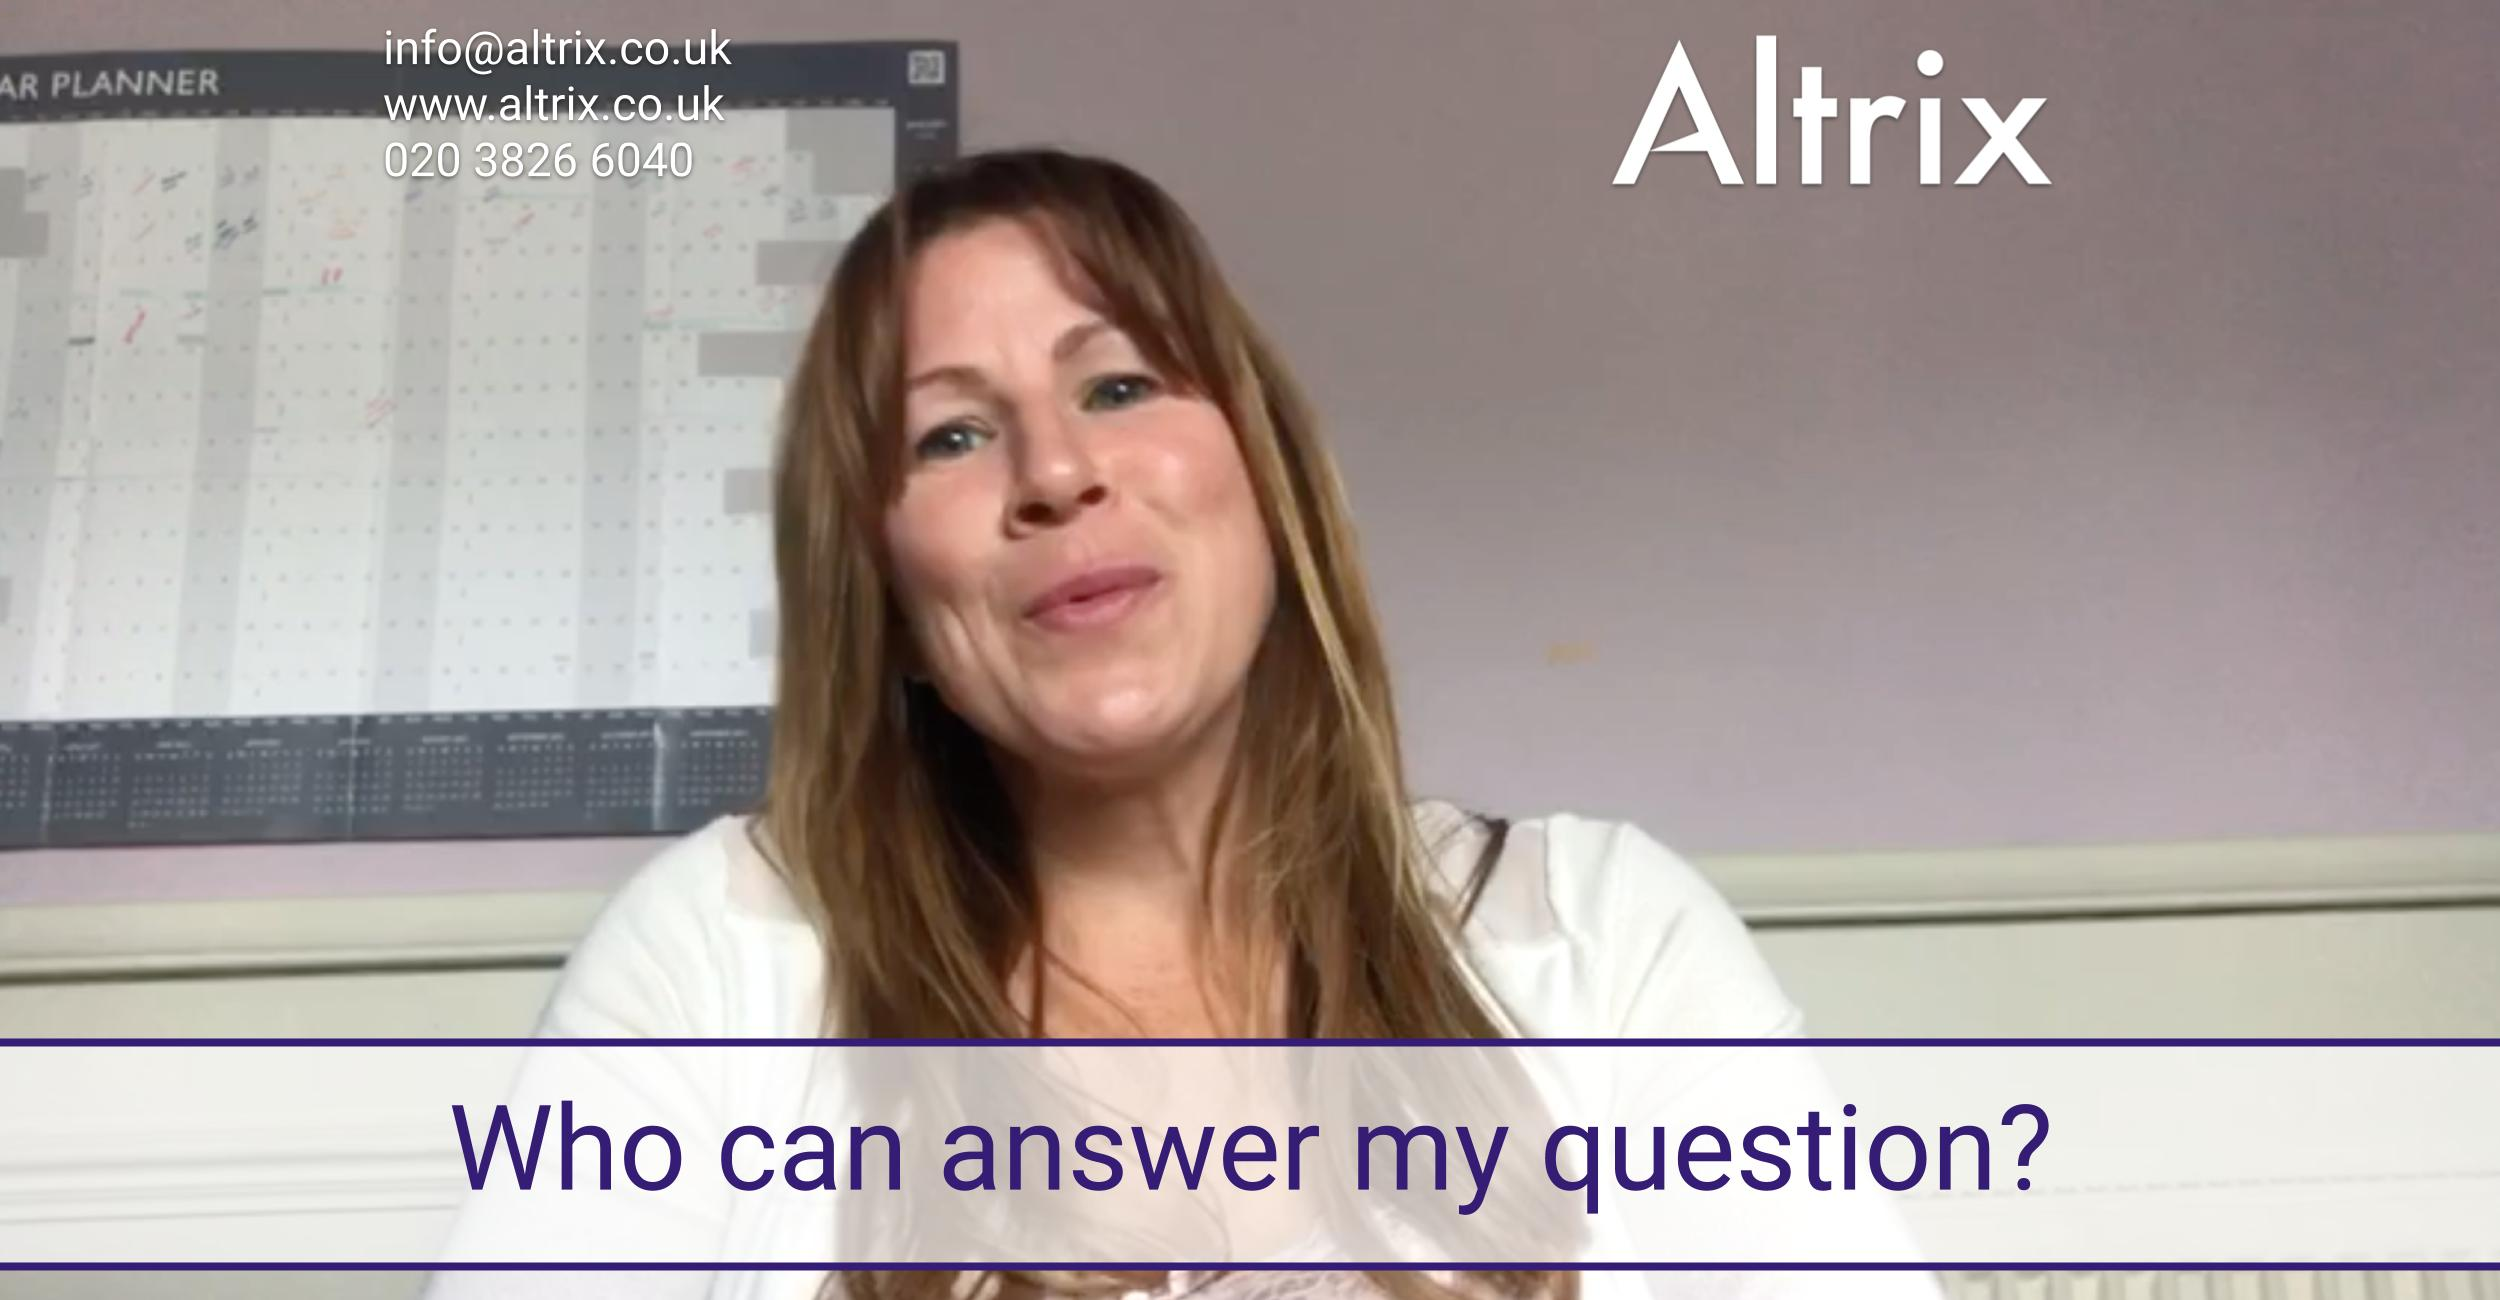 Ask Altrix: Who can answer a question during or after a shift?